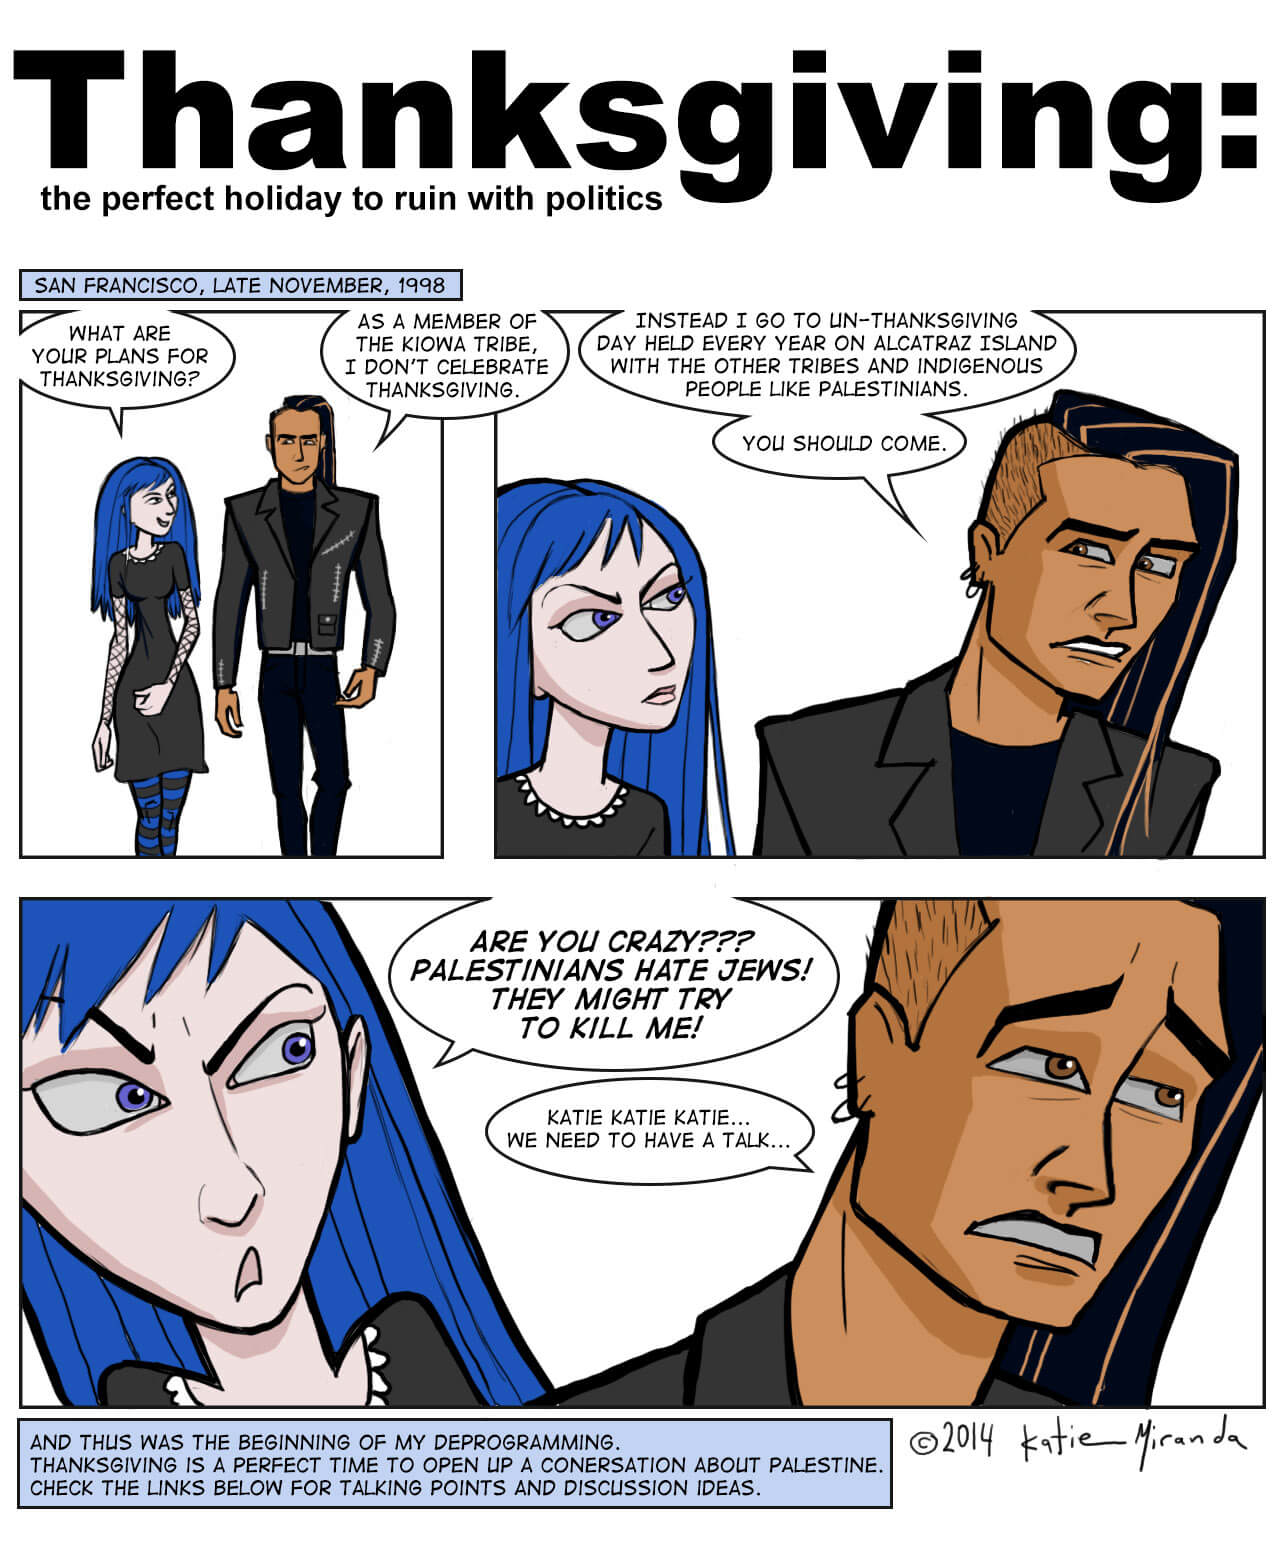 Thanksgiving: The perfect holiday to ruin with politics